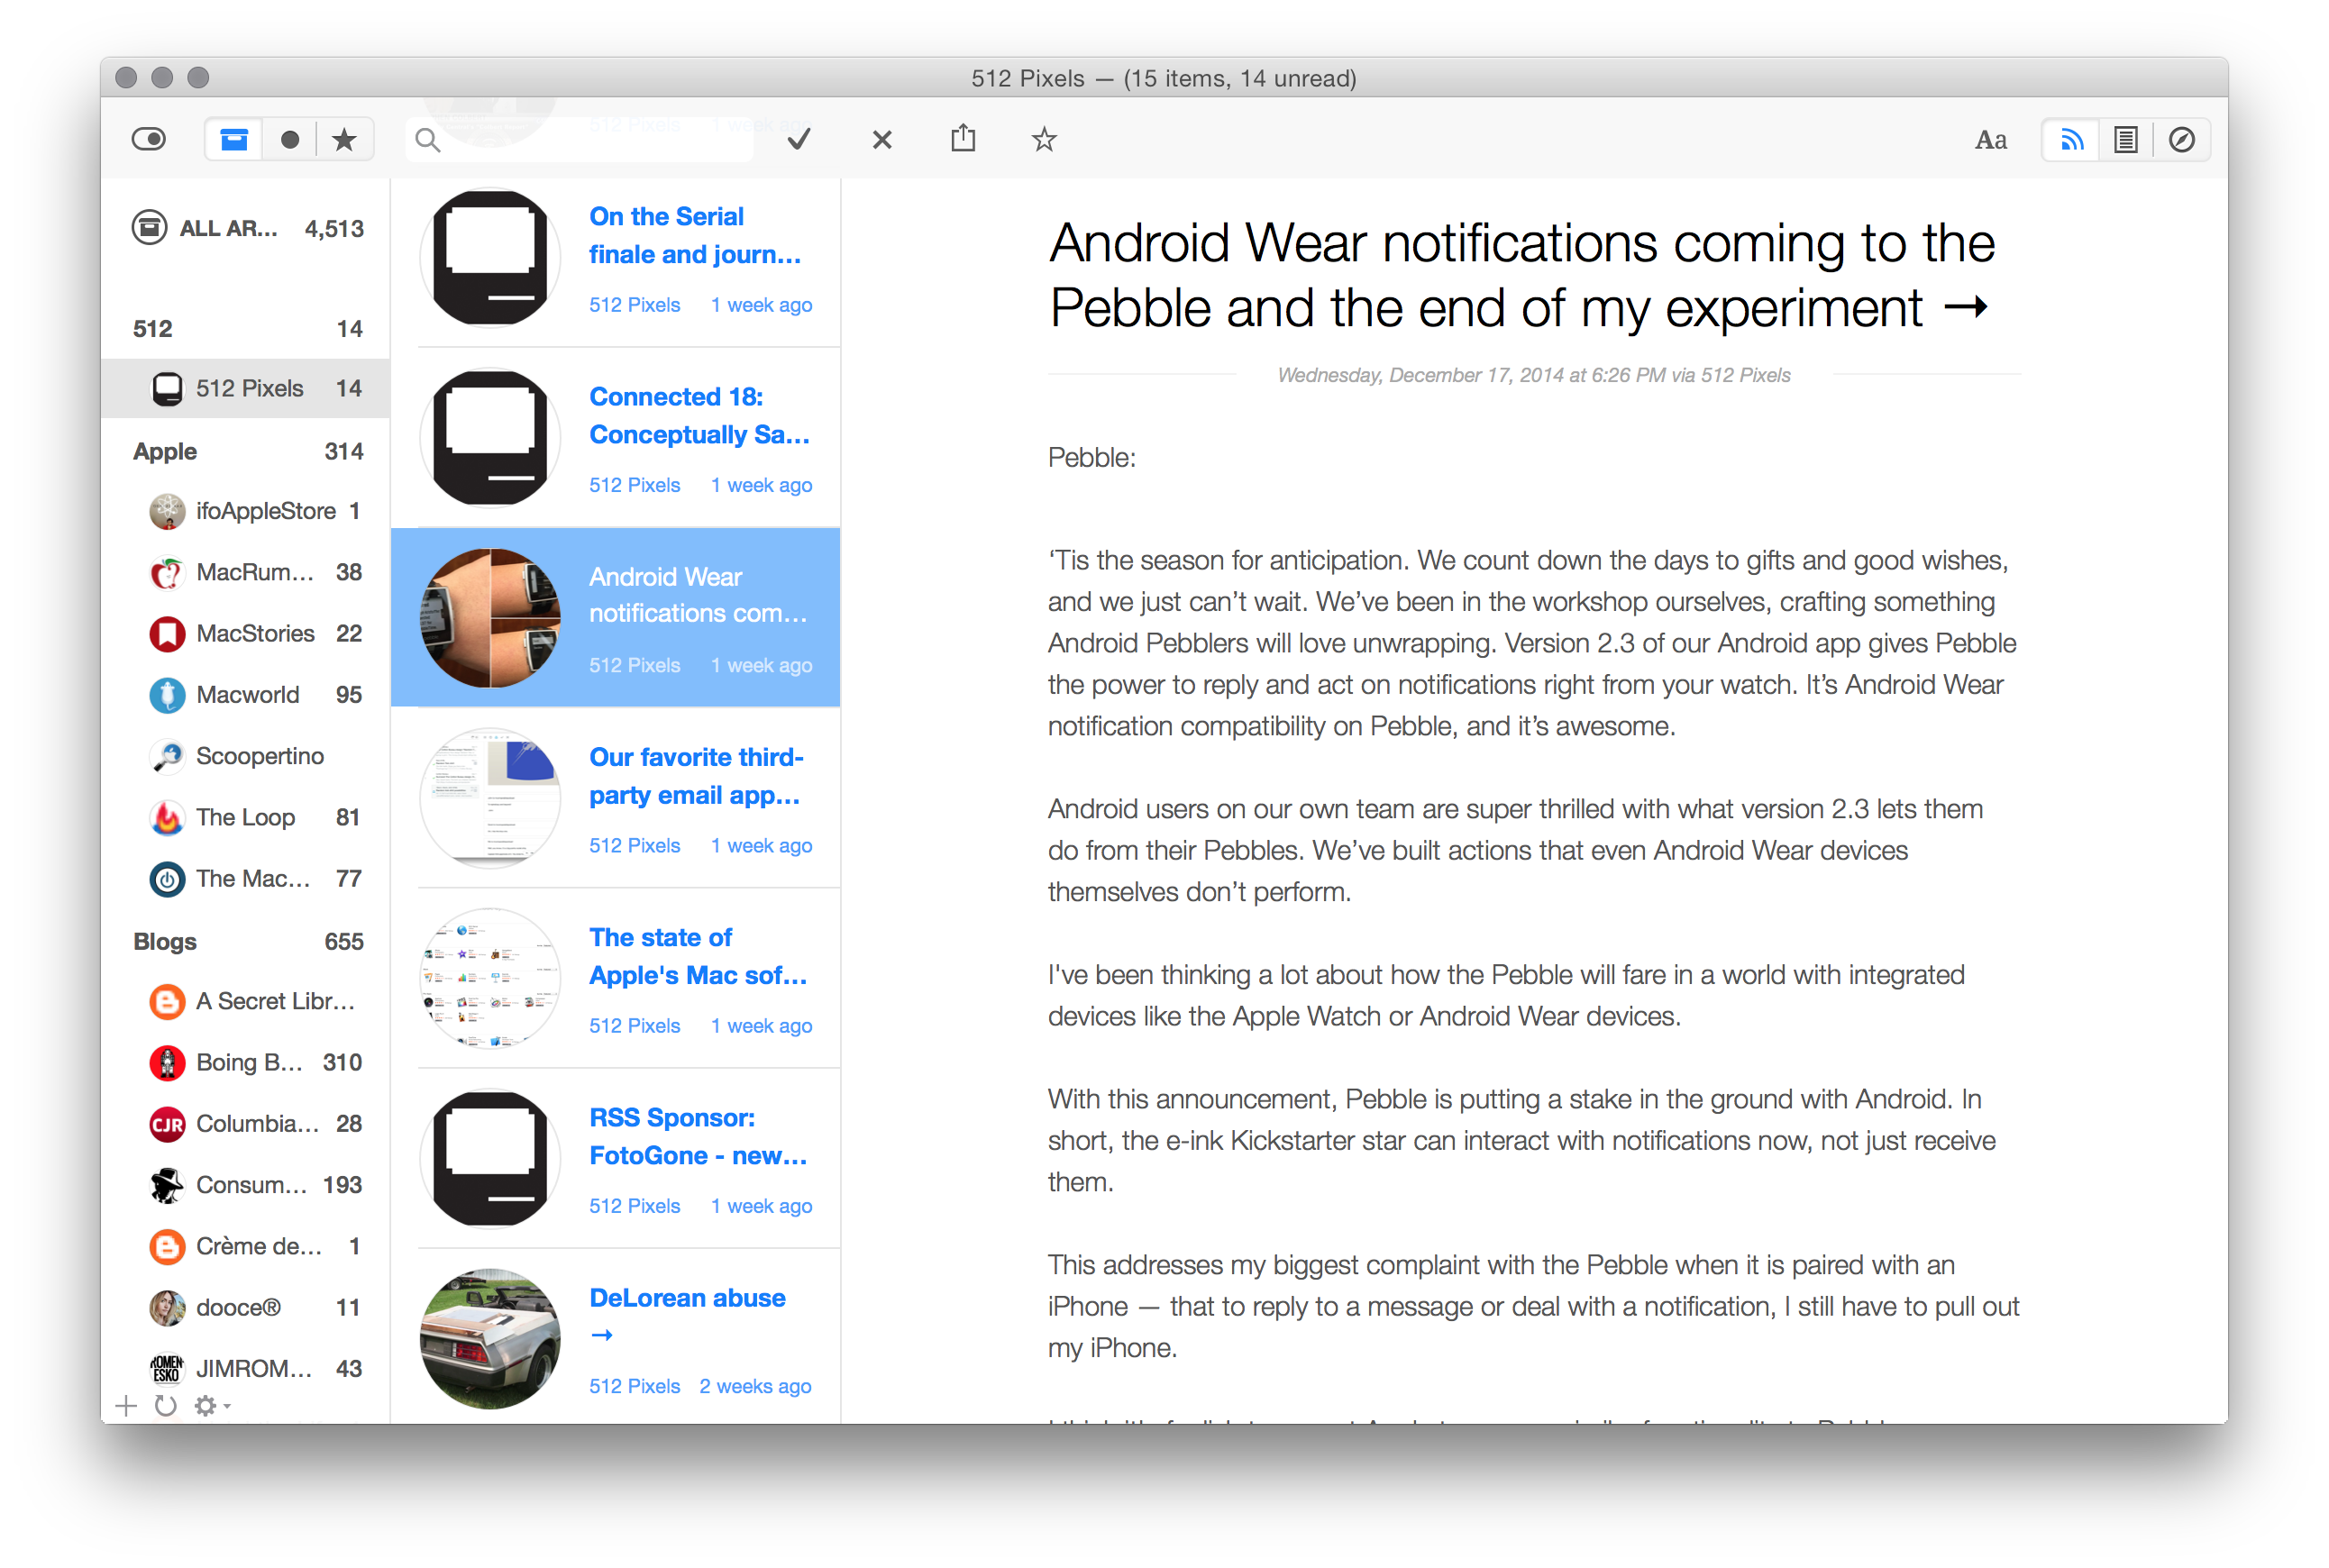 The Best Rss Reader For Macos Sweet Setup 2 Way Switch Feed At Example Above Is My Site That Photo Of Smartwatch Isnt From 512 Pixels Its Pebbles Blog Post I Linked To